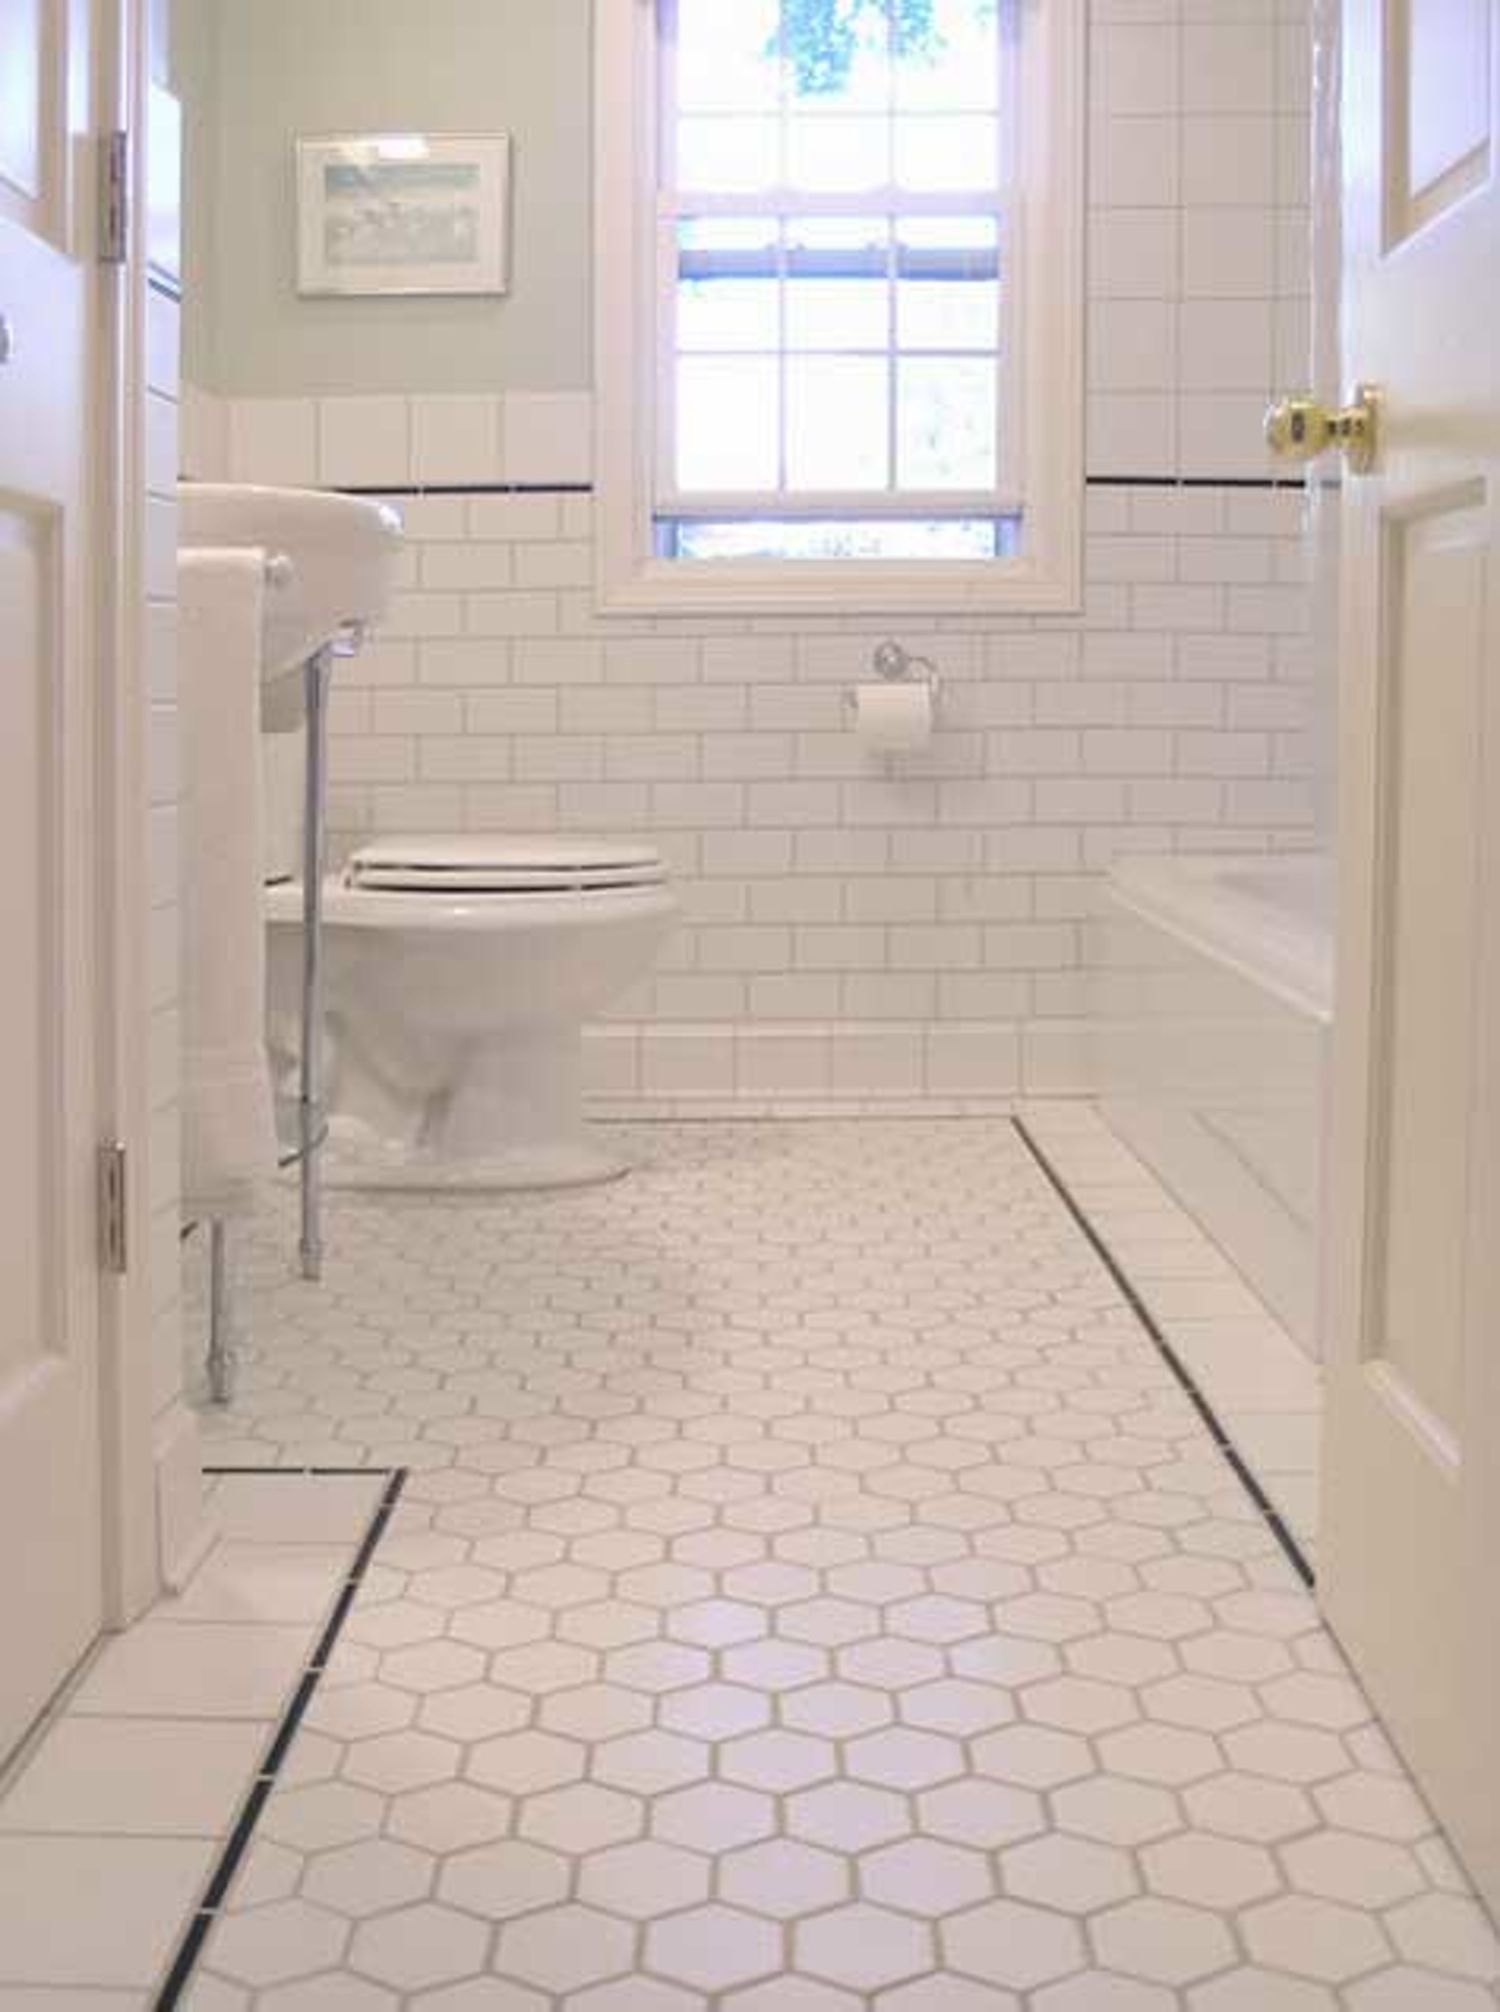 Bathroom Tour from Bungalow Tile | 1920s bathroom, Apartment therapy ...